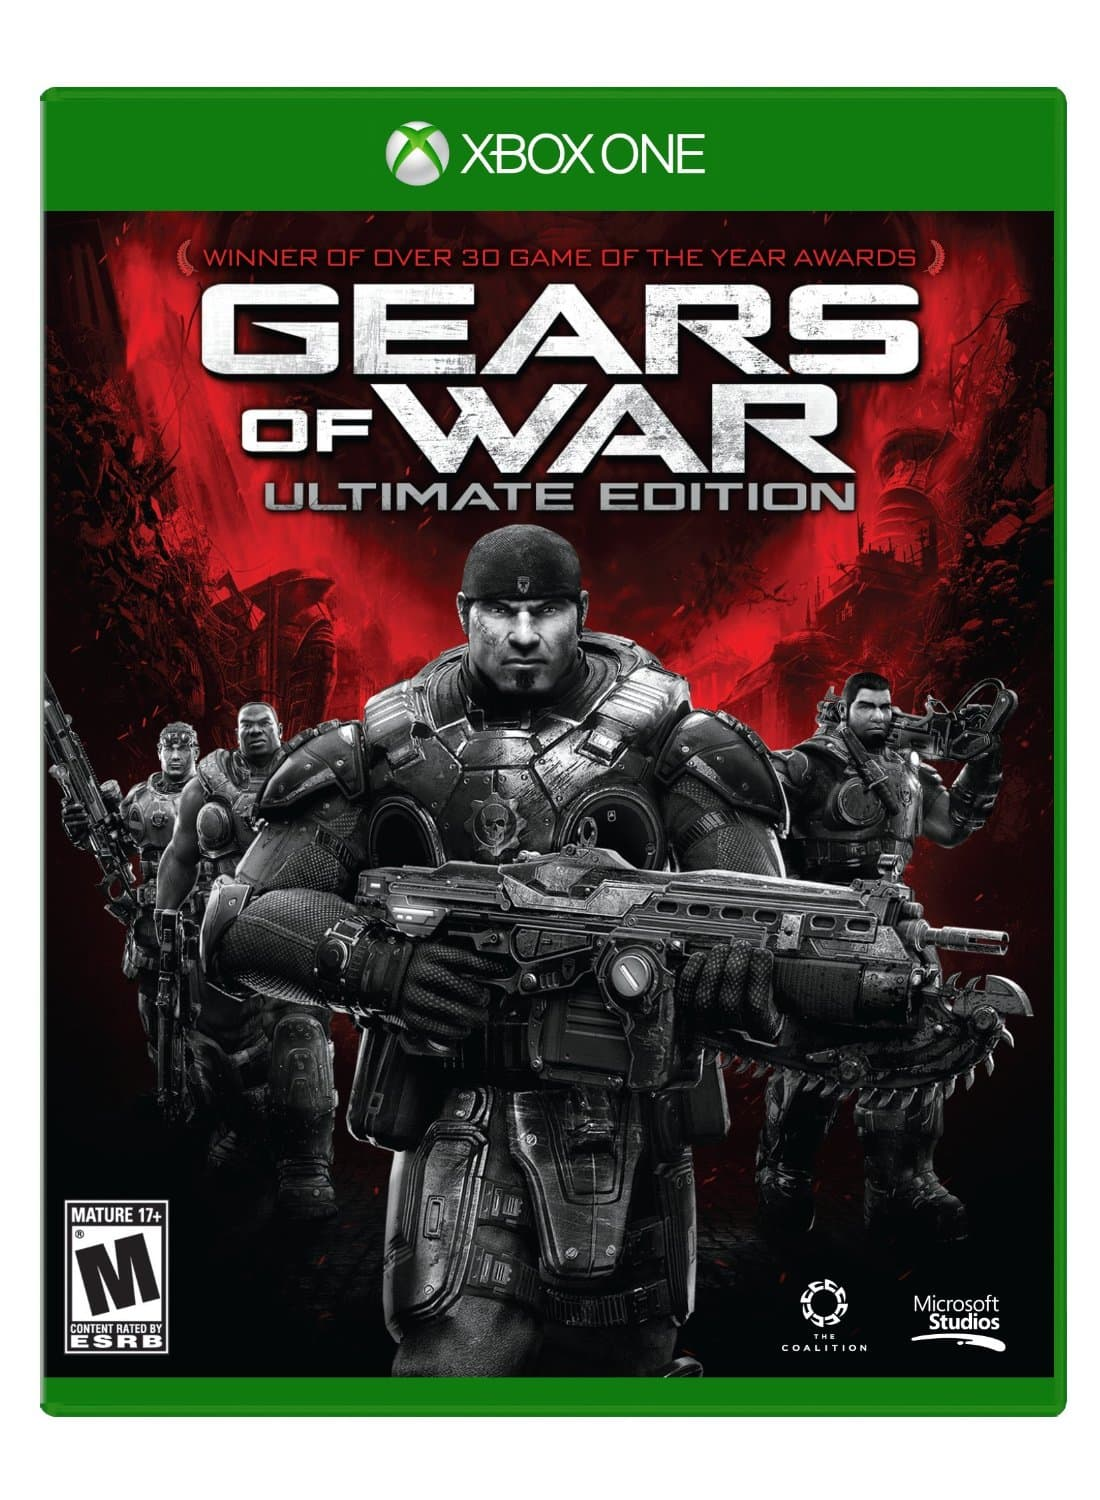 Gears of War Ultimate Edition Xbox One $15 amazon lightning deal